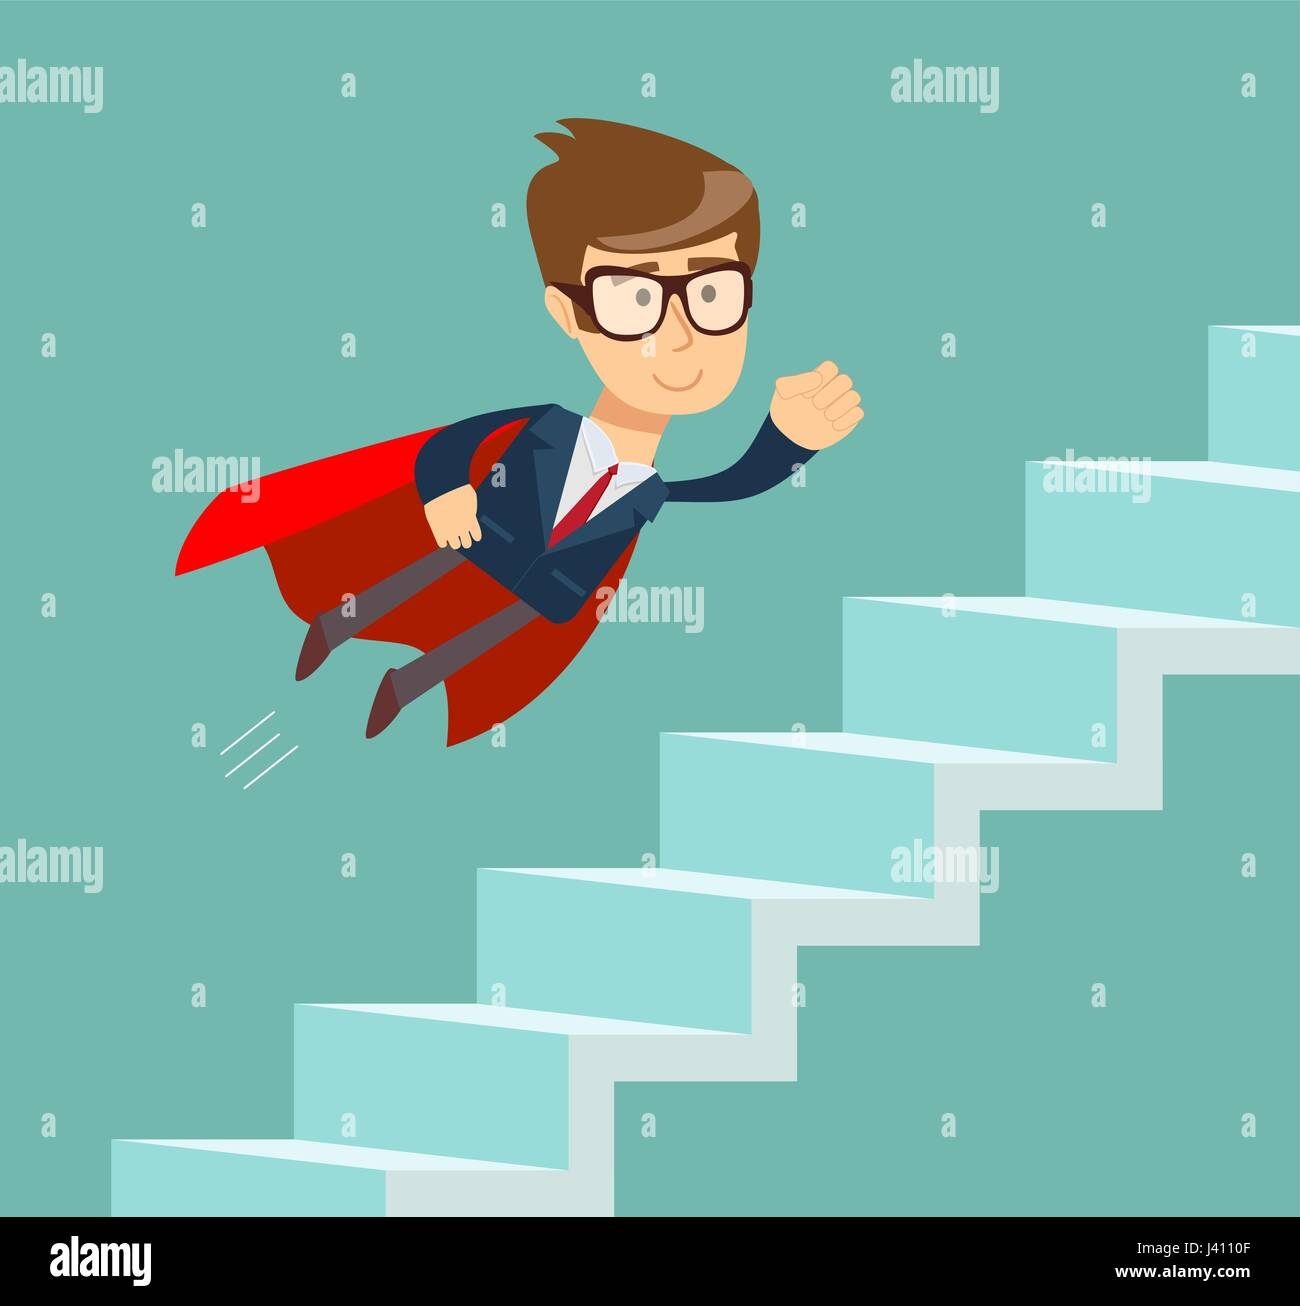 Cartoon Man Climbing Stairs High Resolution Stock Photography And Images Alamy